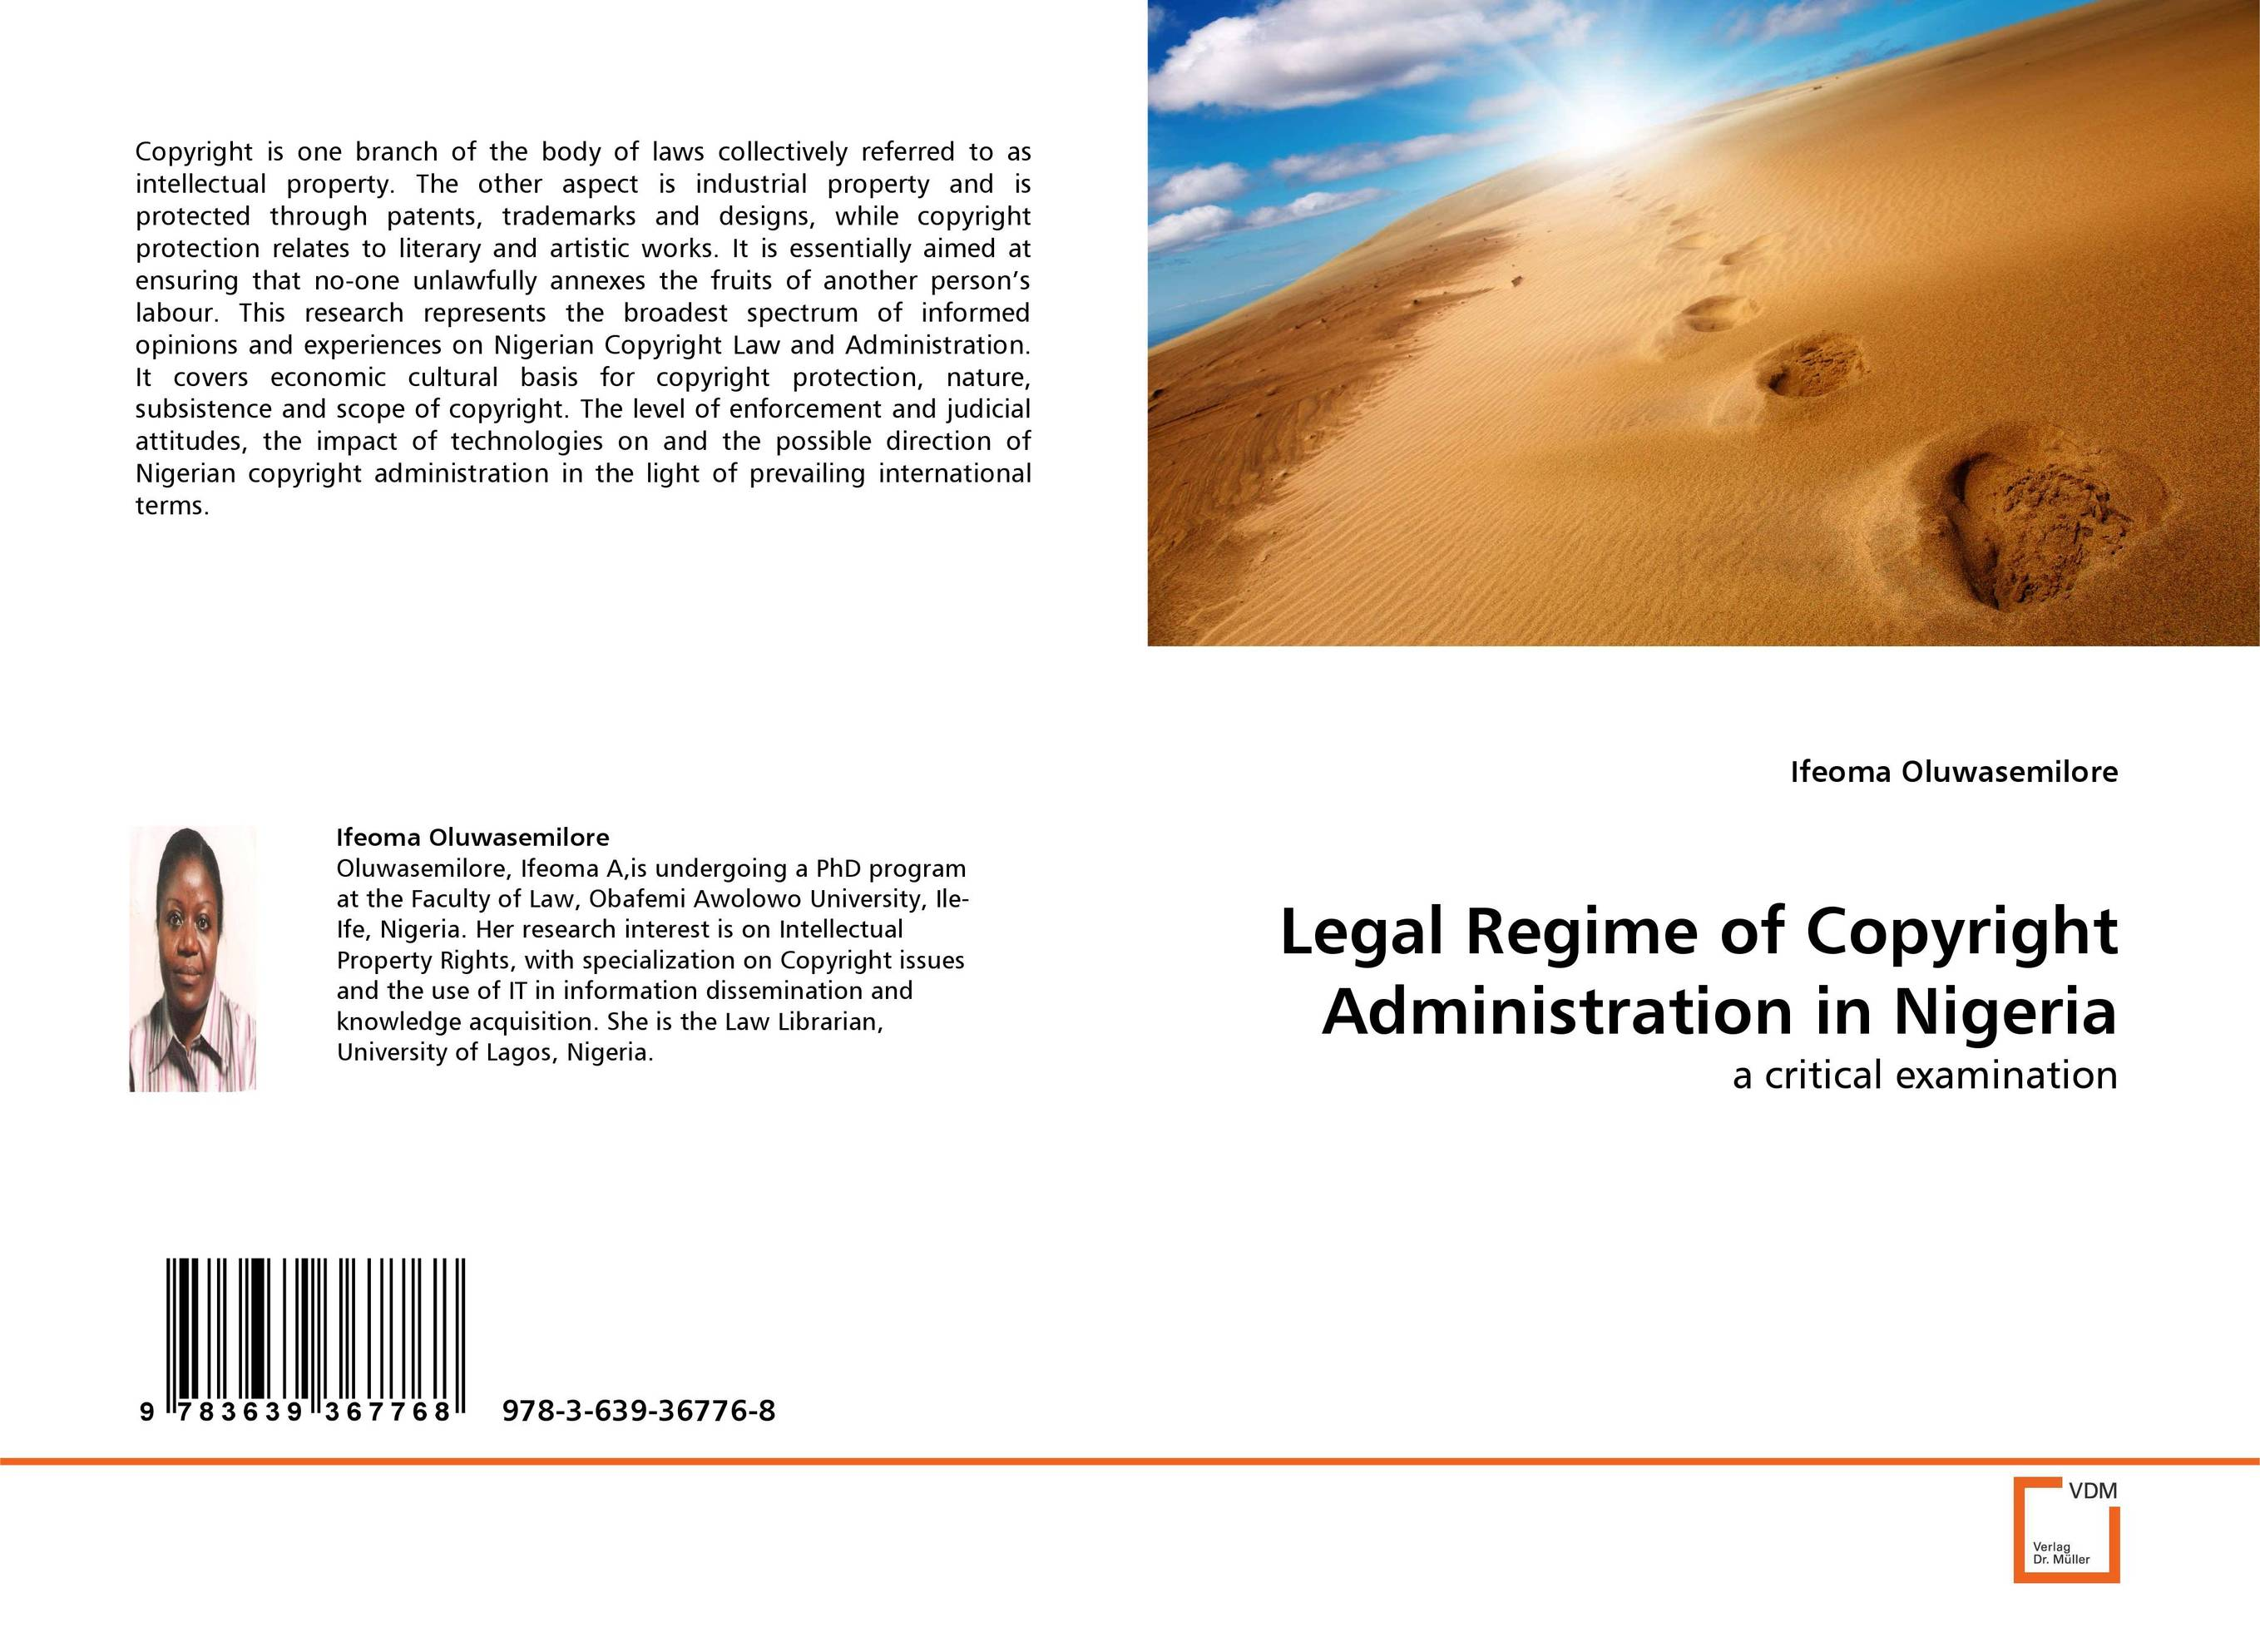 Legal Regime of Copyright Administration in Nigeria primavera de filippi copyright law in the digital environment